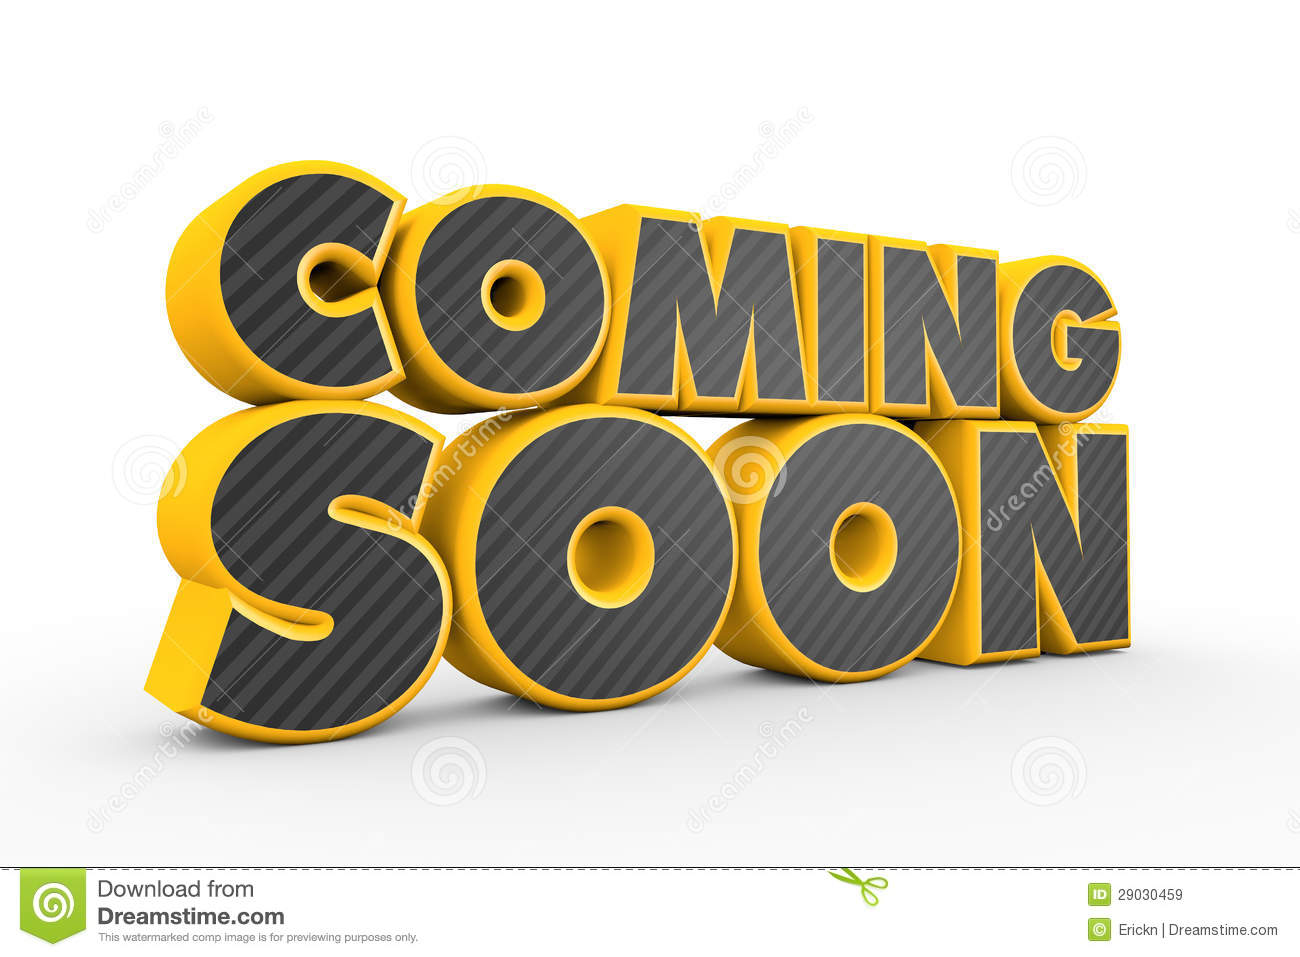 Coming Soon Royalty Free Stock Images - Image: 29030459